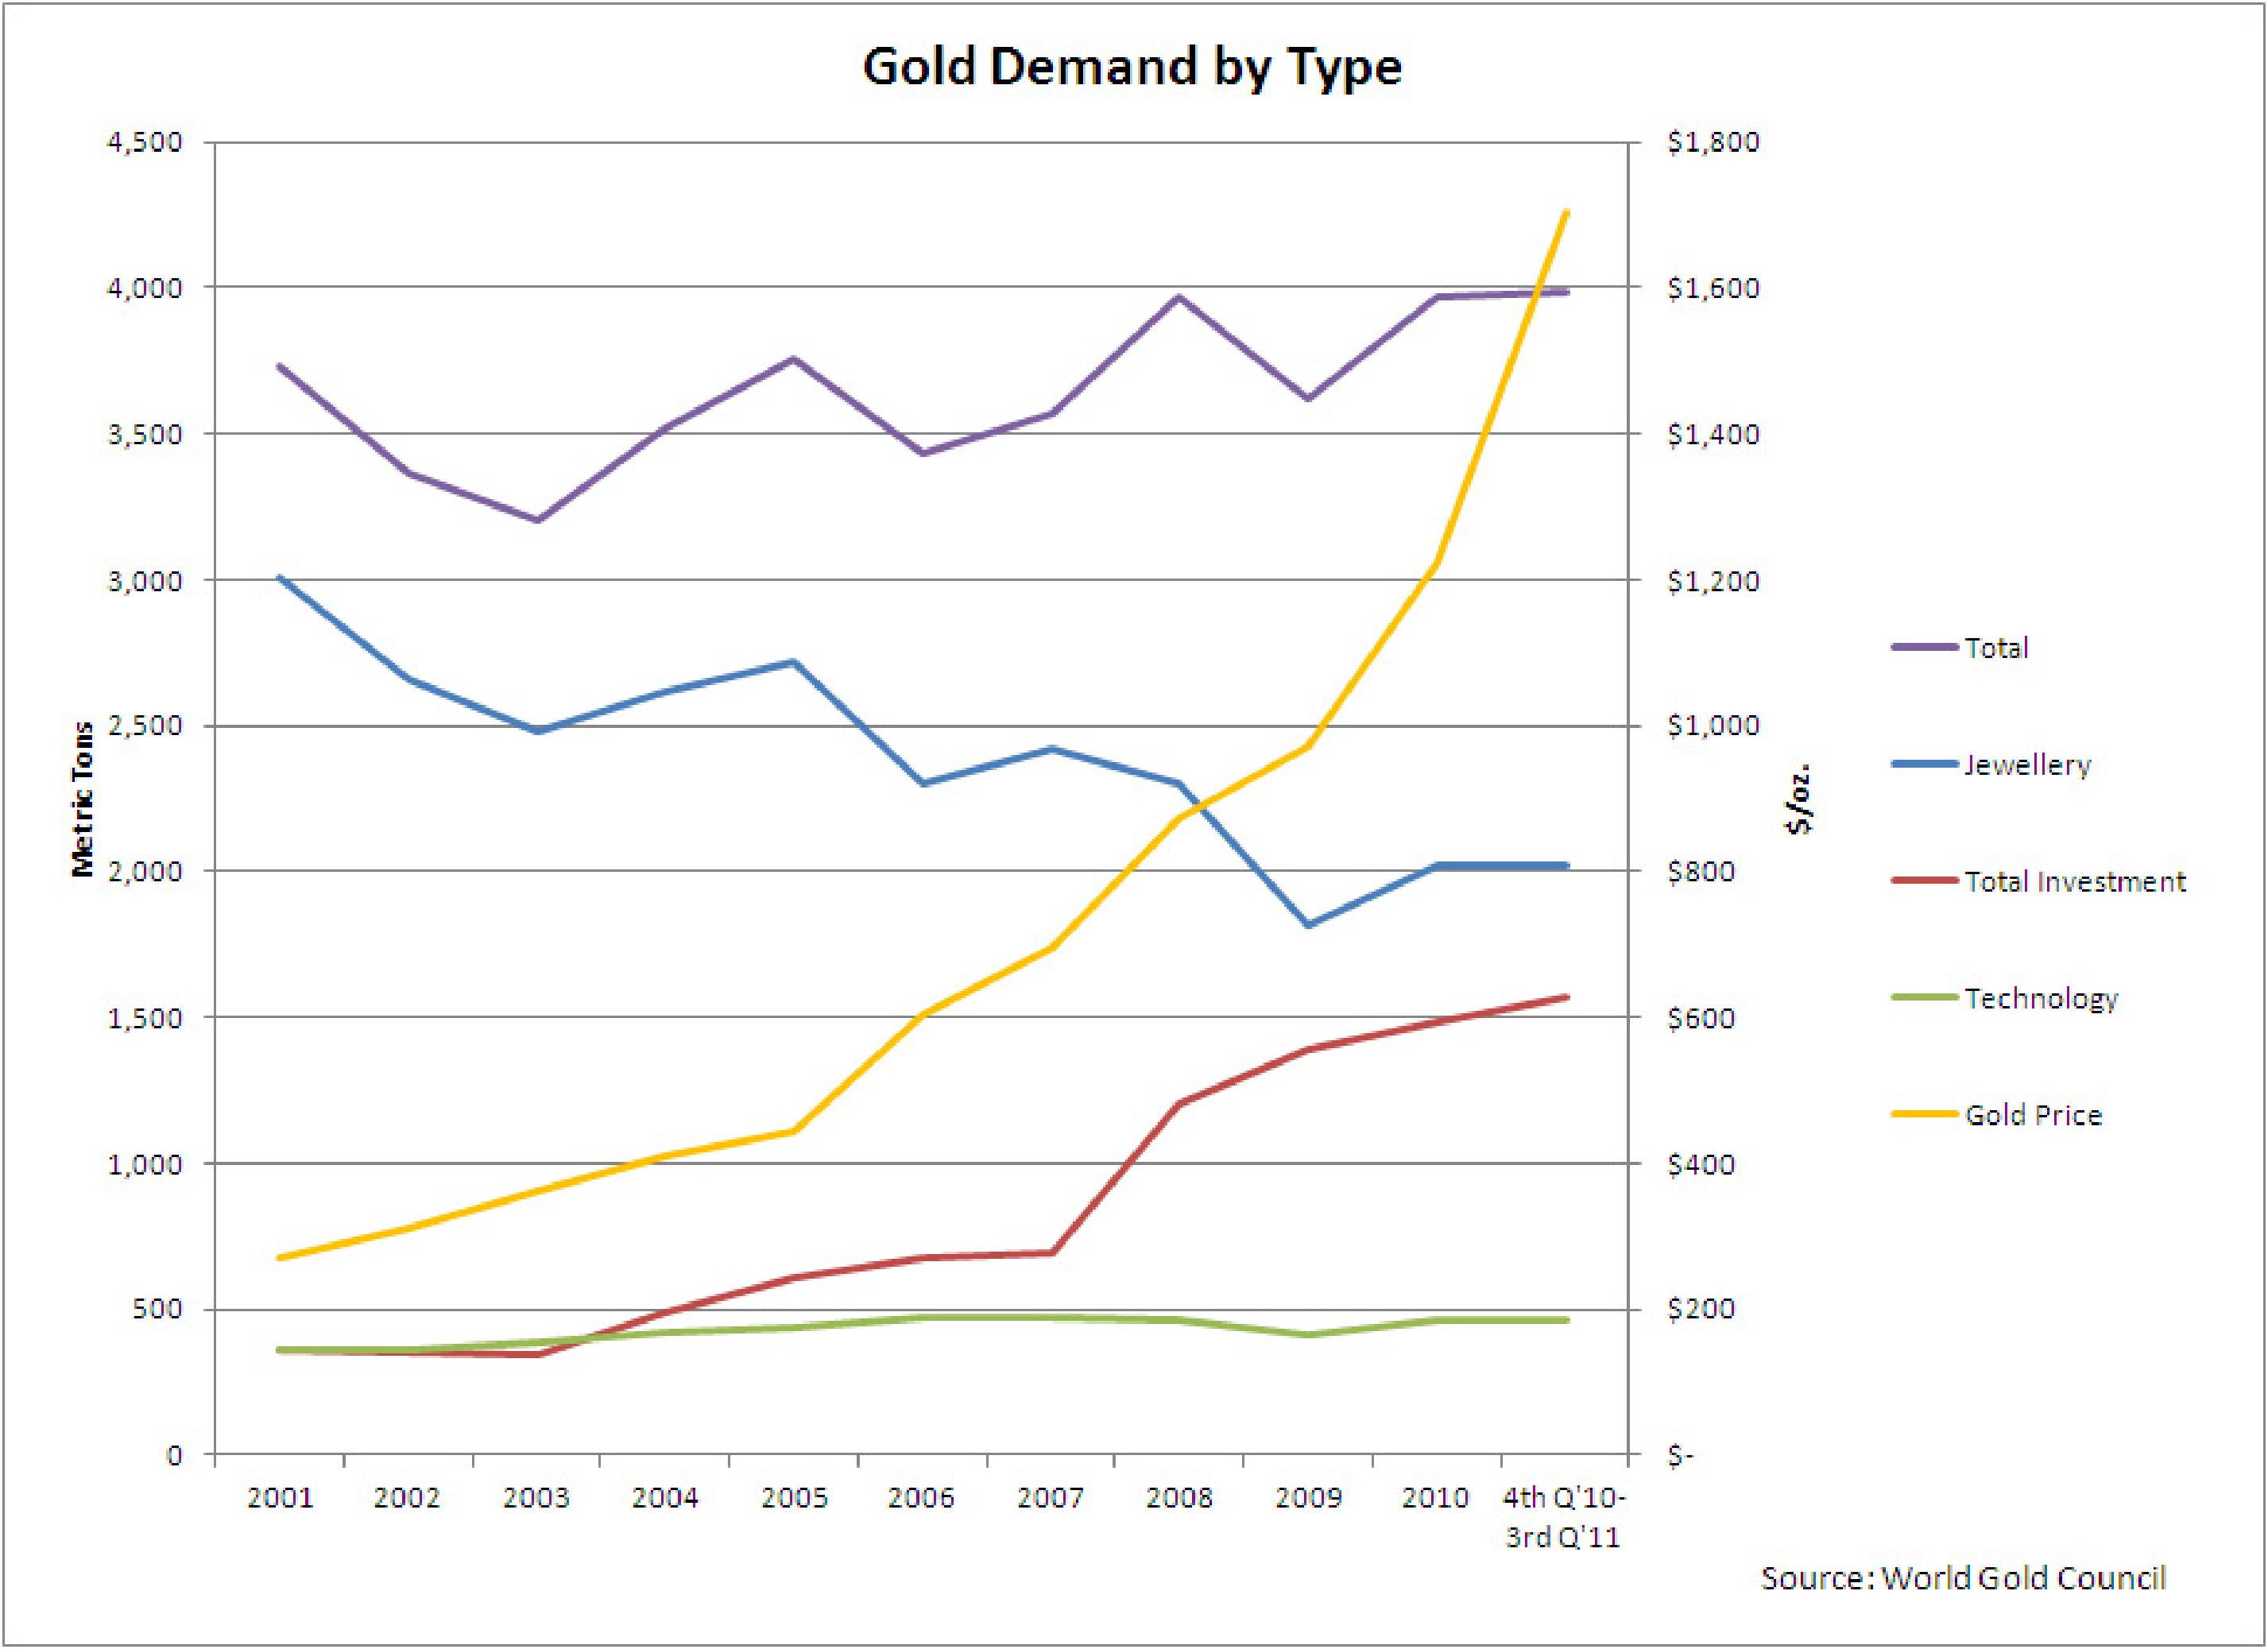 Gold Demand by Type